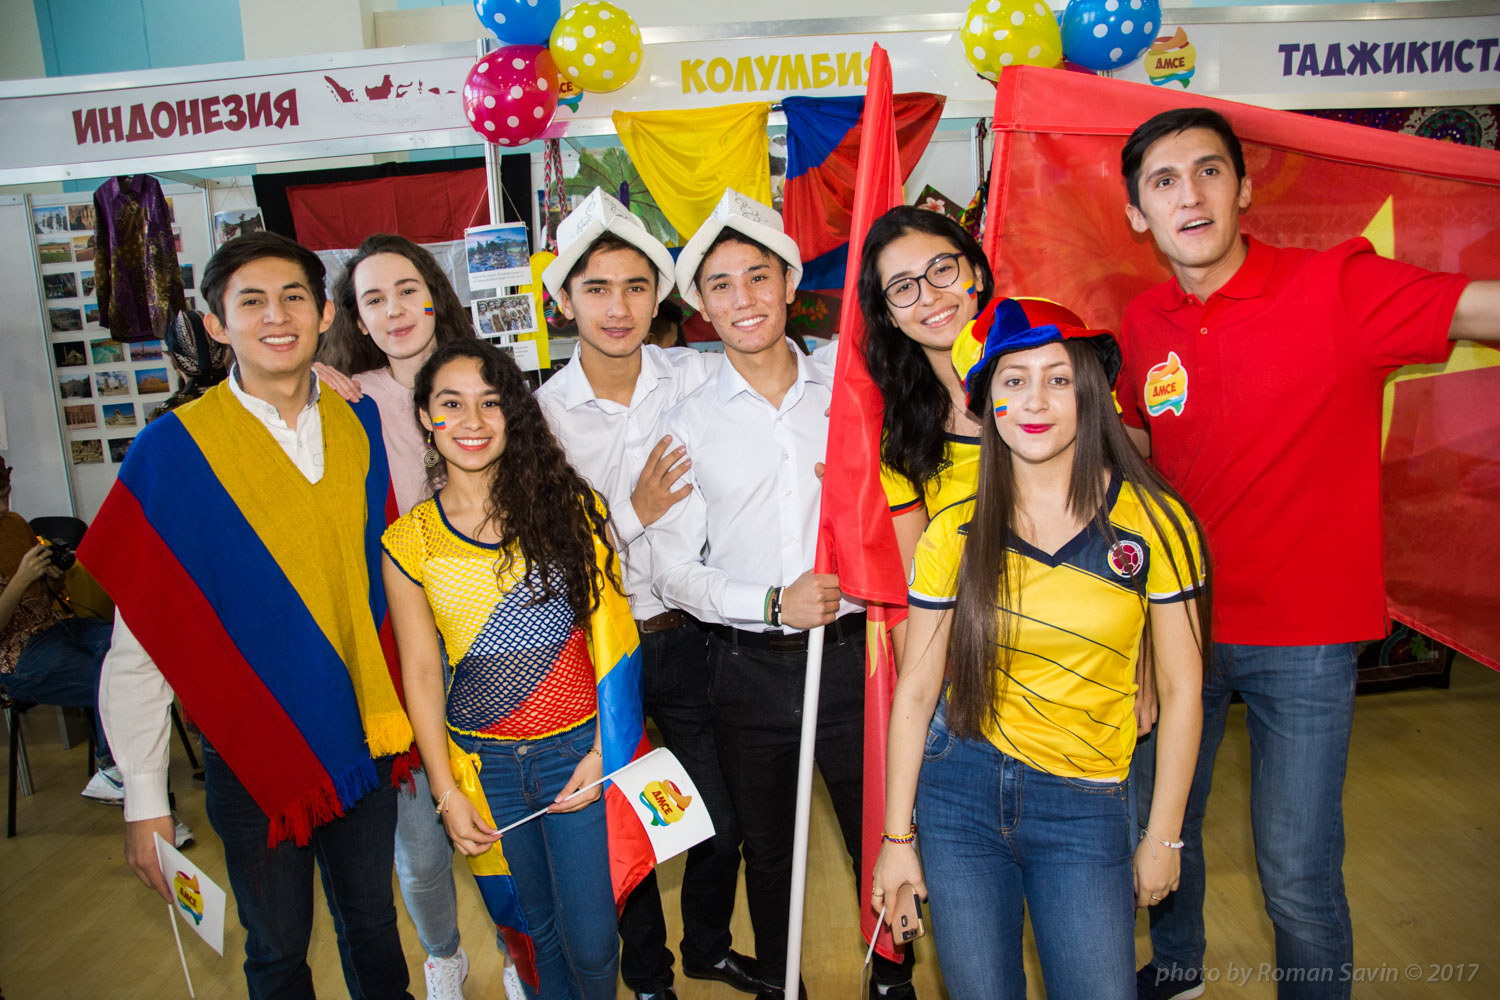 The International Student Unity Day 2017